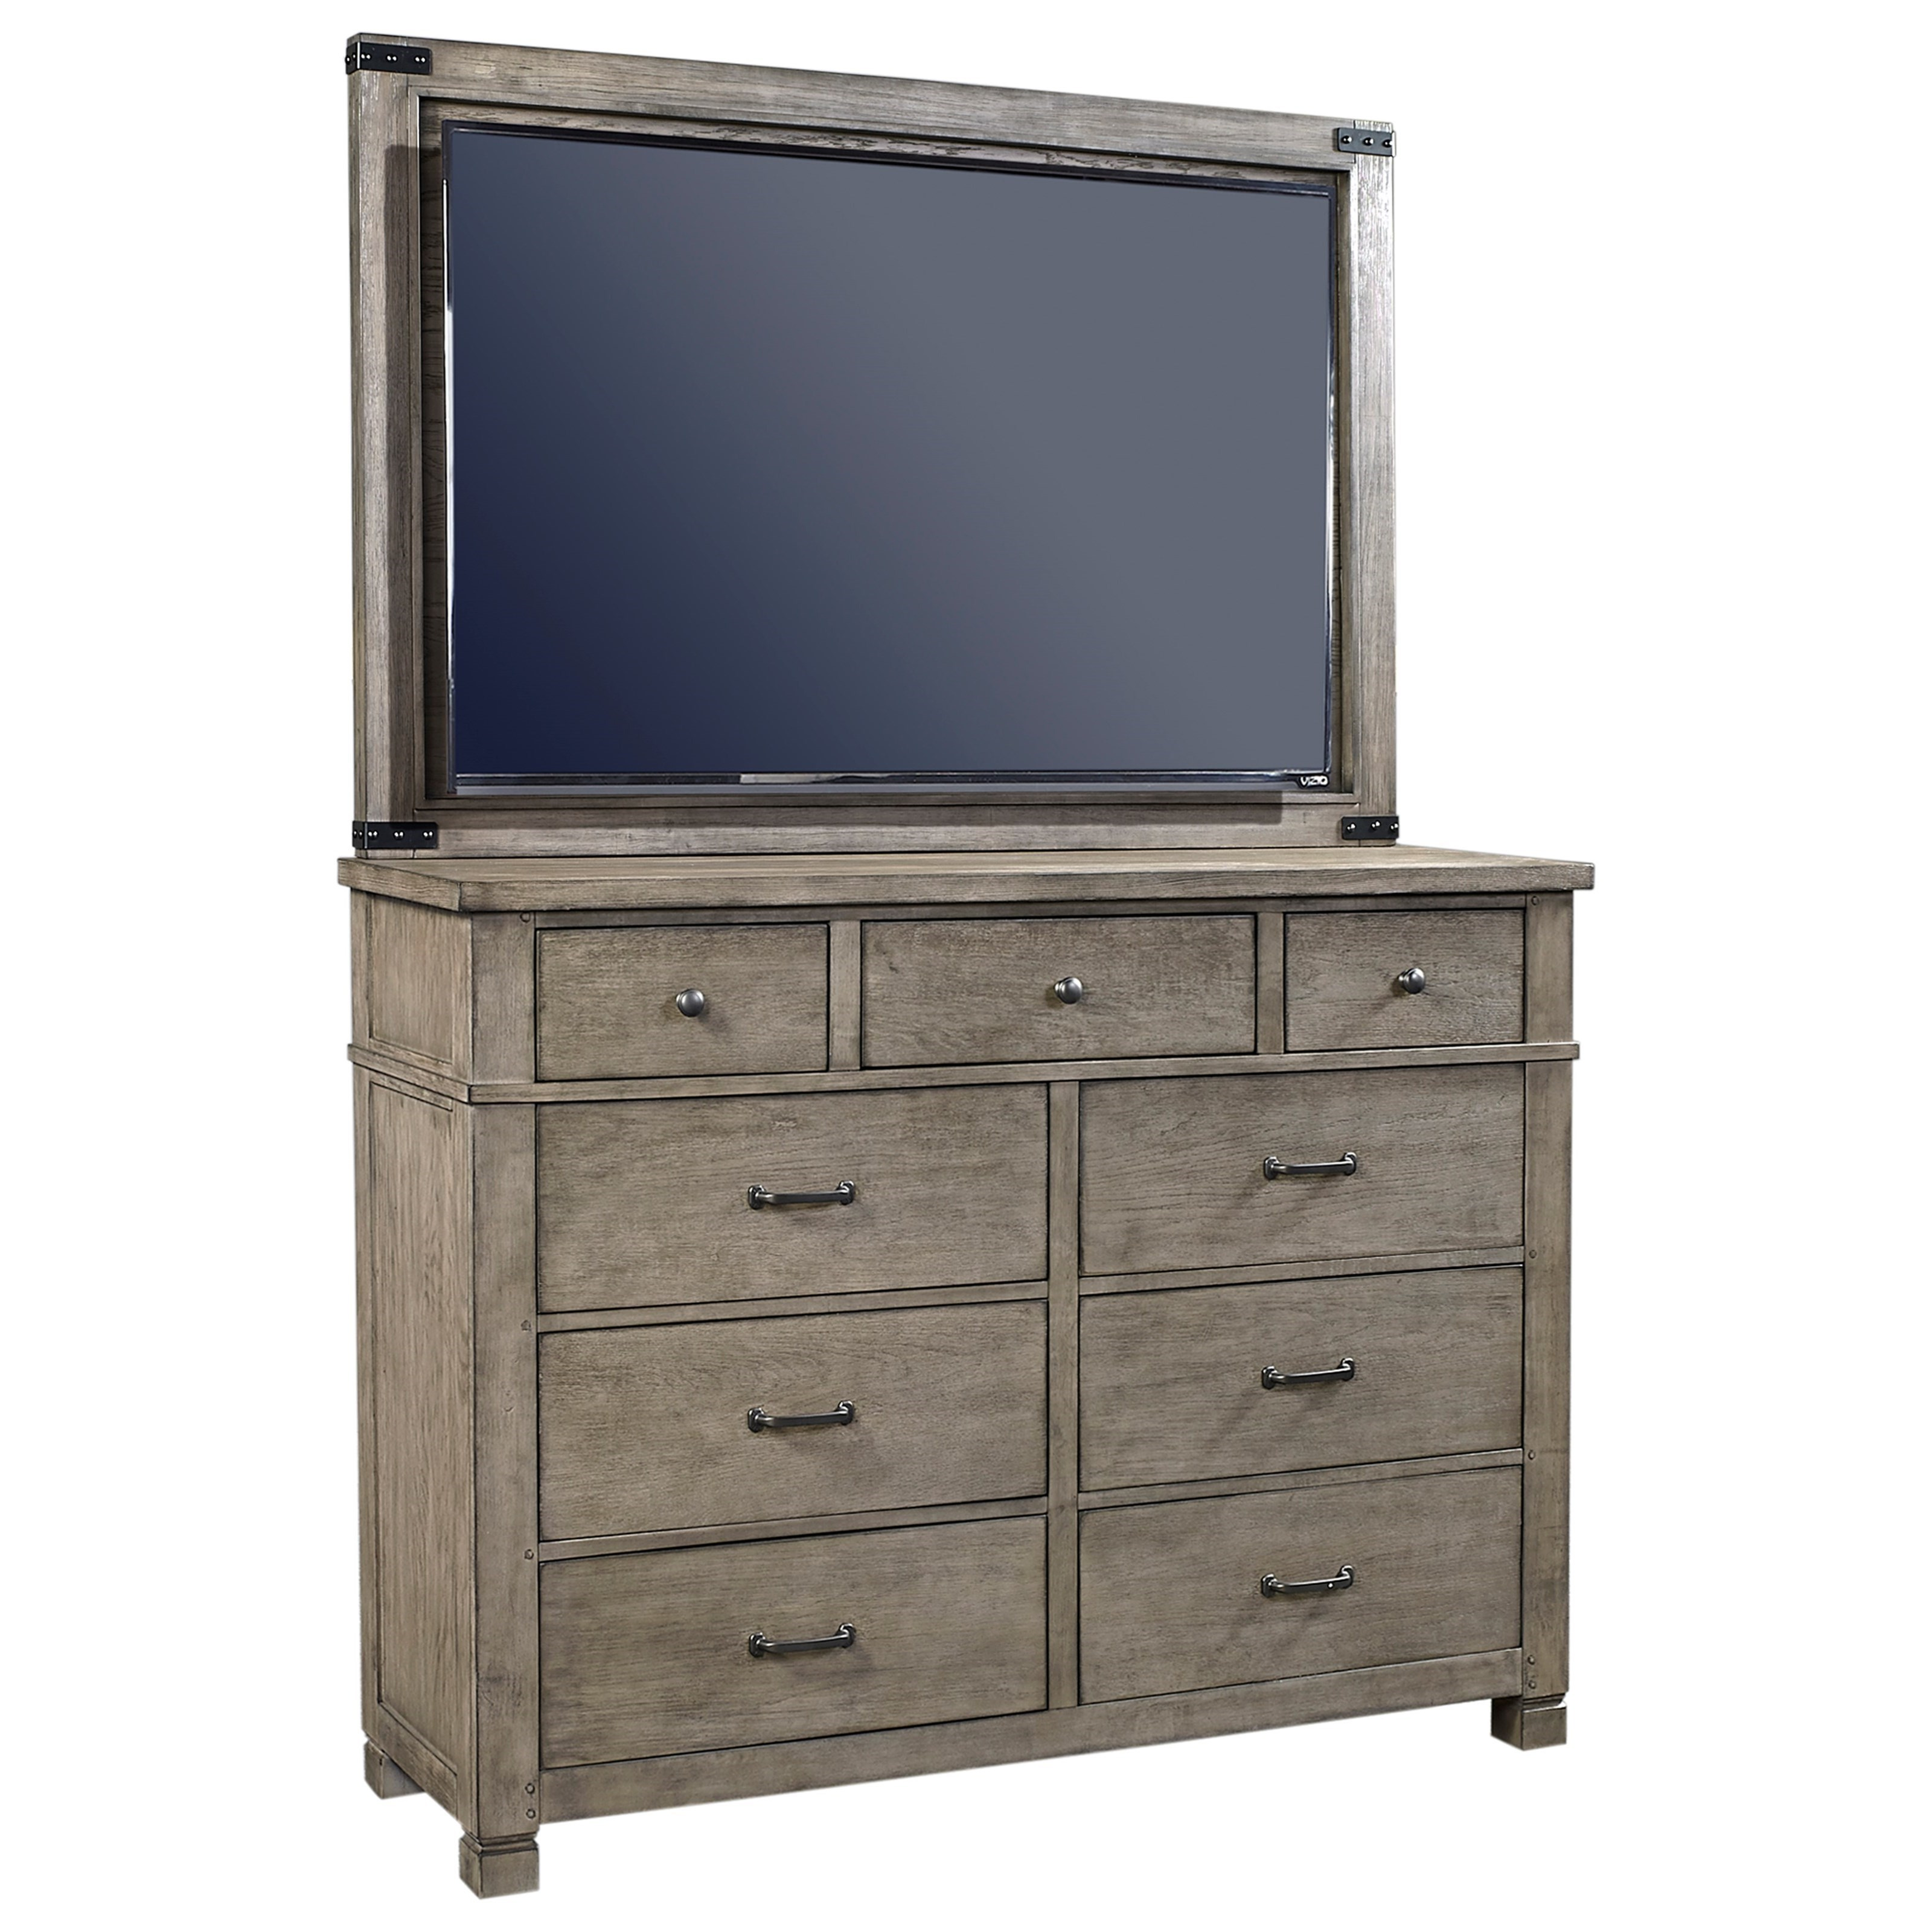 Tucker Chesser with TV Stand by Aspenhome at Walker's Furniture